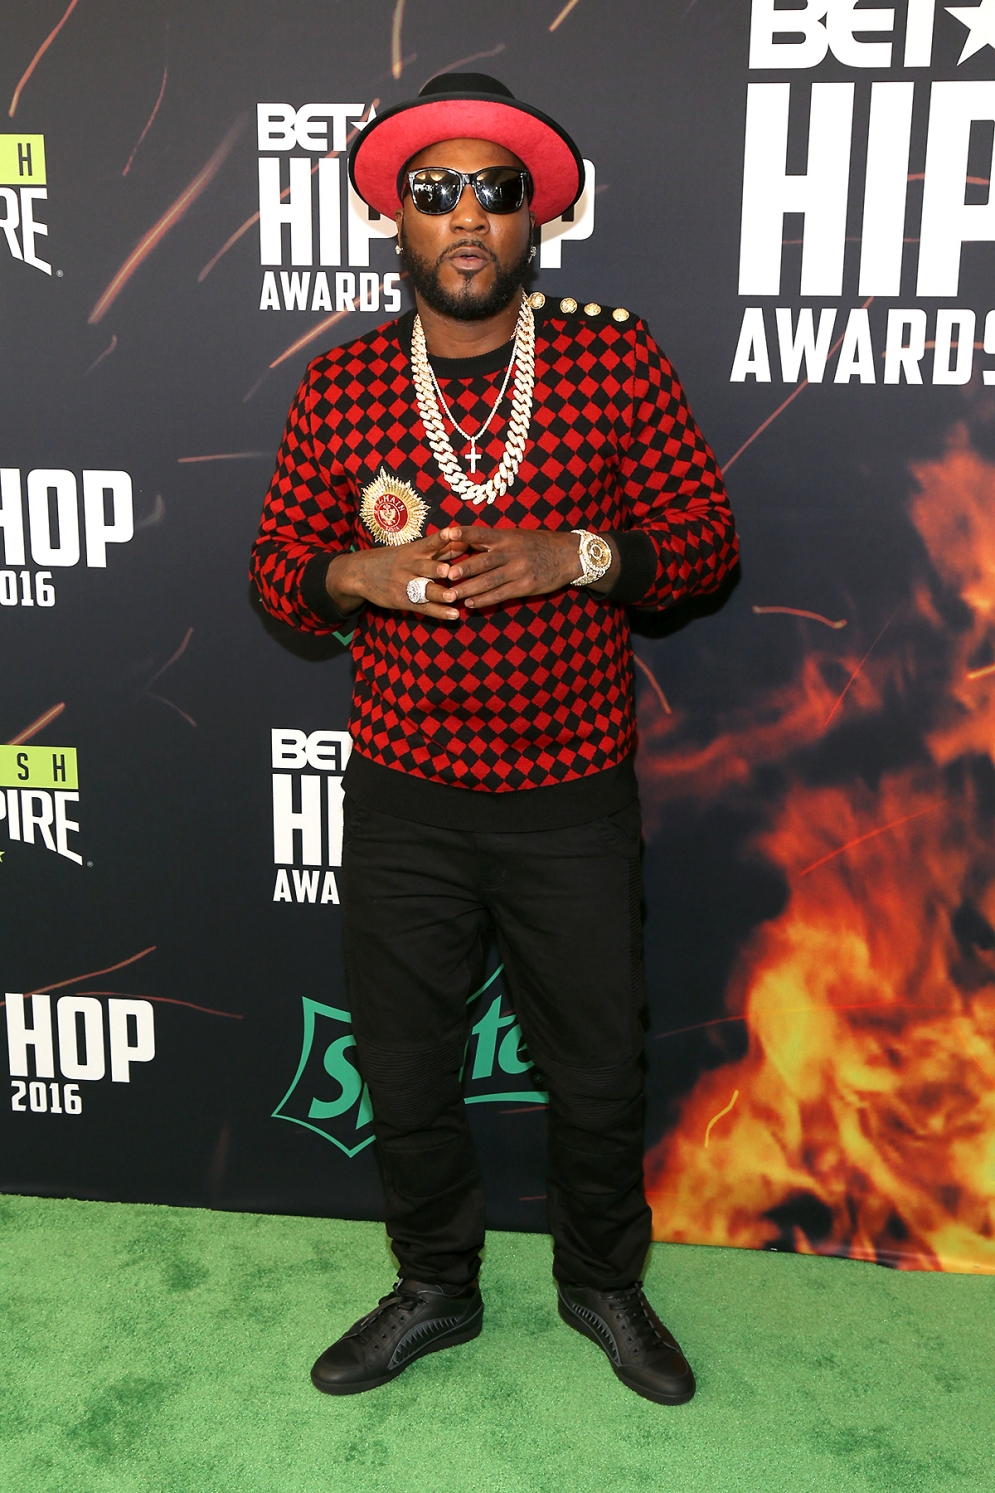 Hip Hop Fashion: Glitz & Glam From The 2016 BET Hip-Hop Awards : DJ Khaled